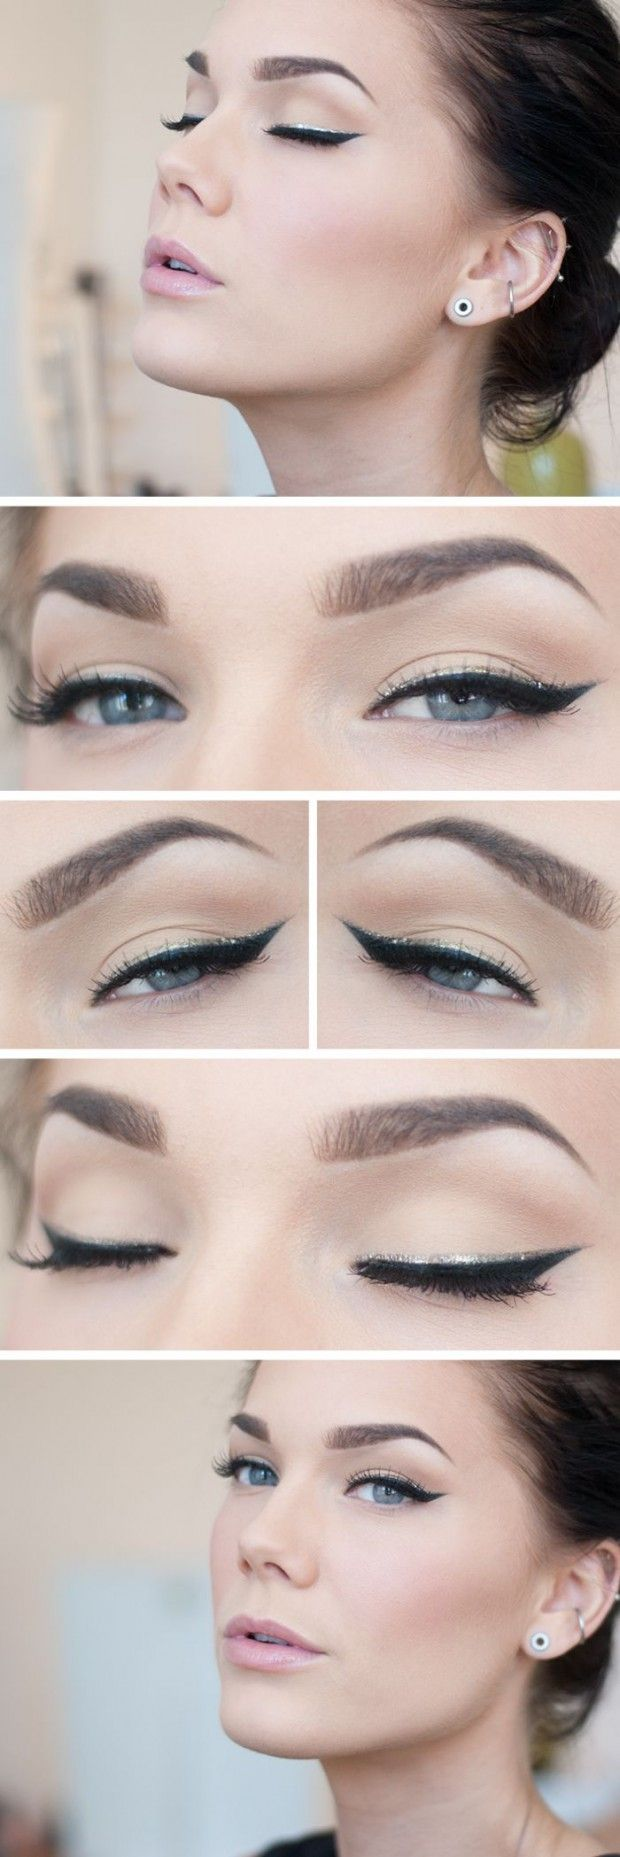 The black cat eyeliner is classic and the gold line above adds a special detail which can match your accessories and bring out